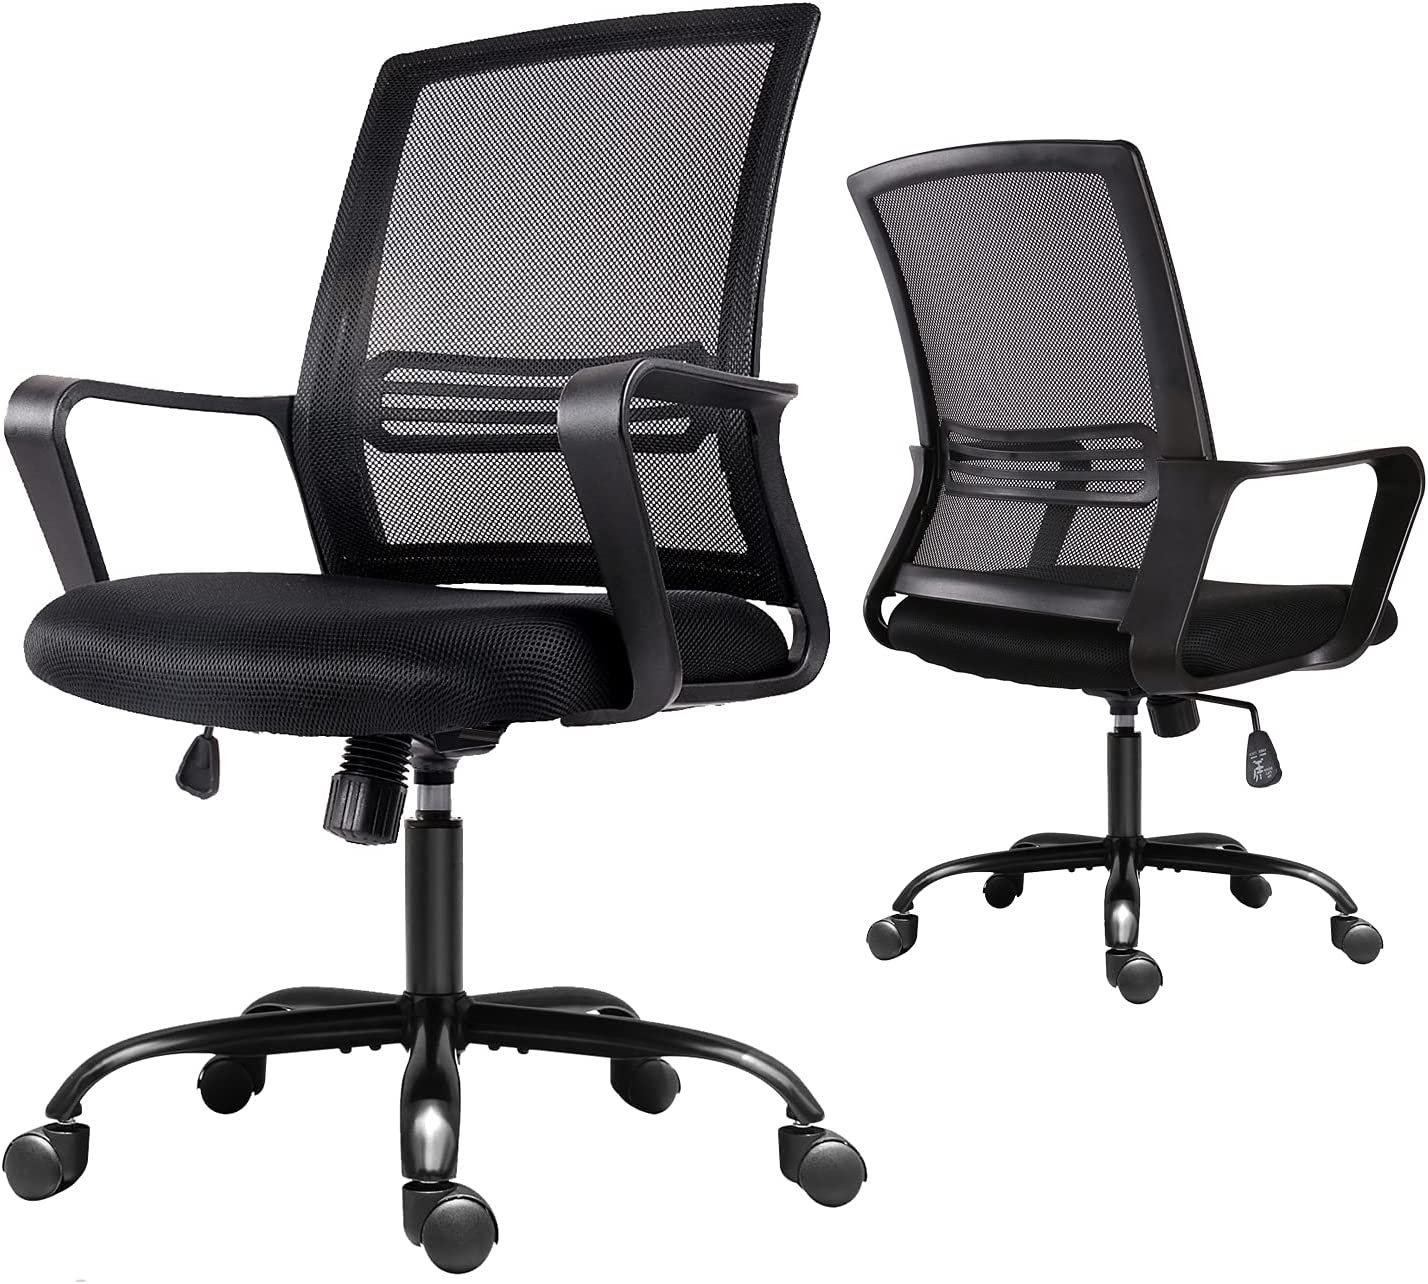 Office Chair Mesh cheap Home C Computer Desk Task SEAL limited product